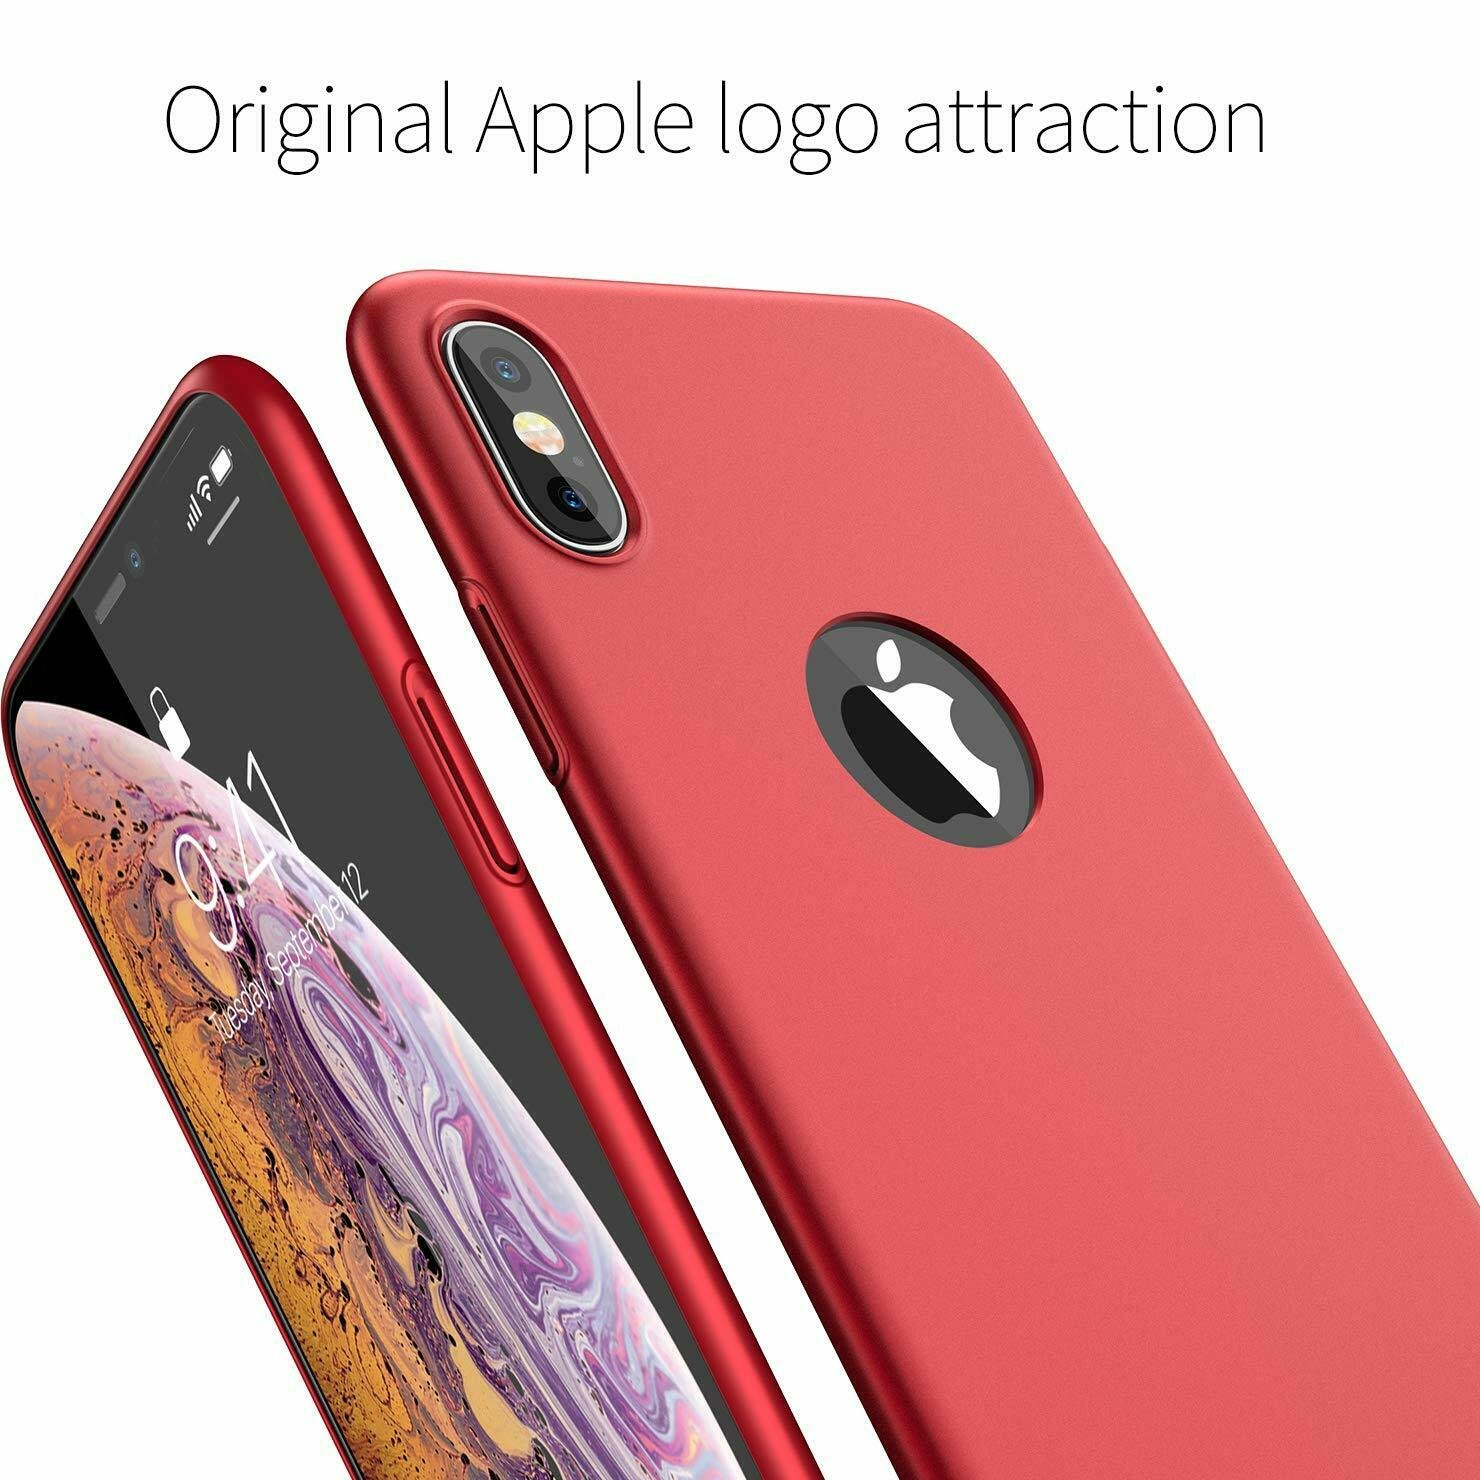 Case-Thin-Hard-Cover-Tempered-Glass-Screen-Protector-For-iPhone-X-XR-XS-Max thumbnail 23